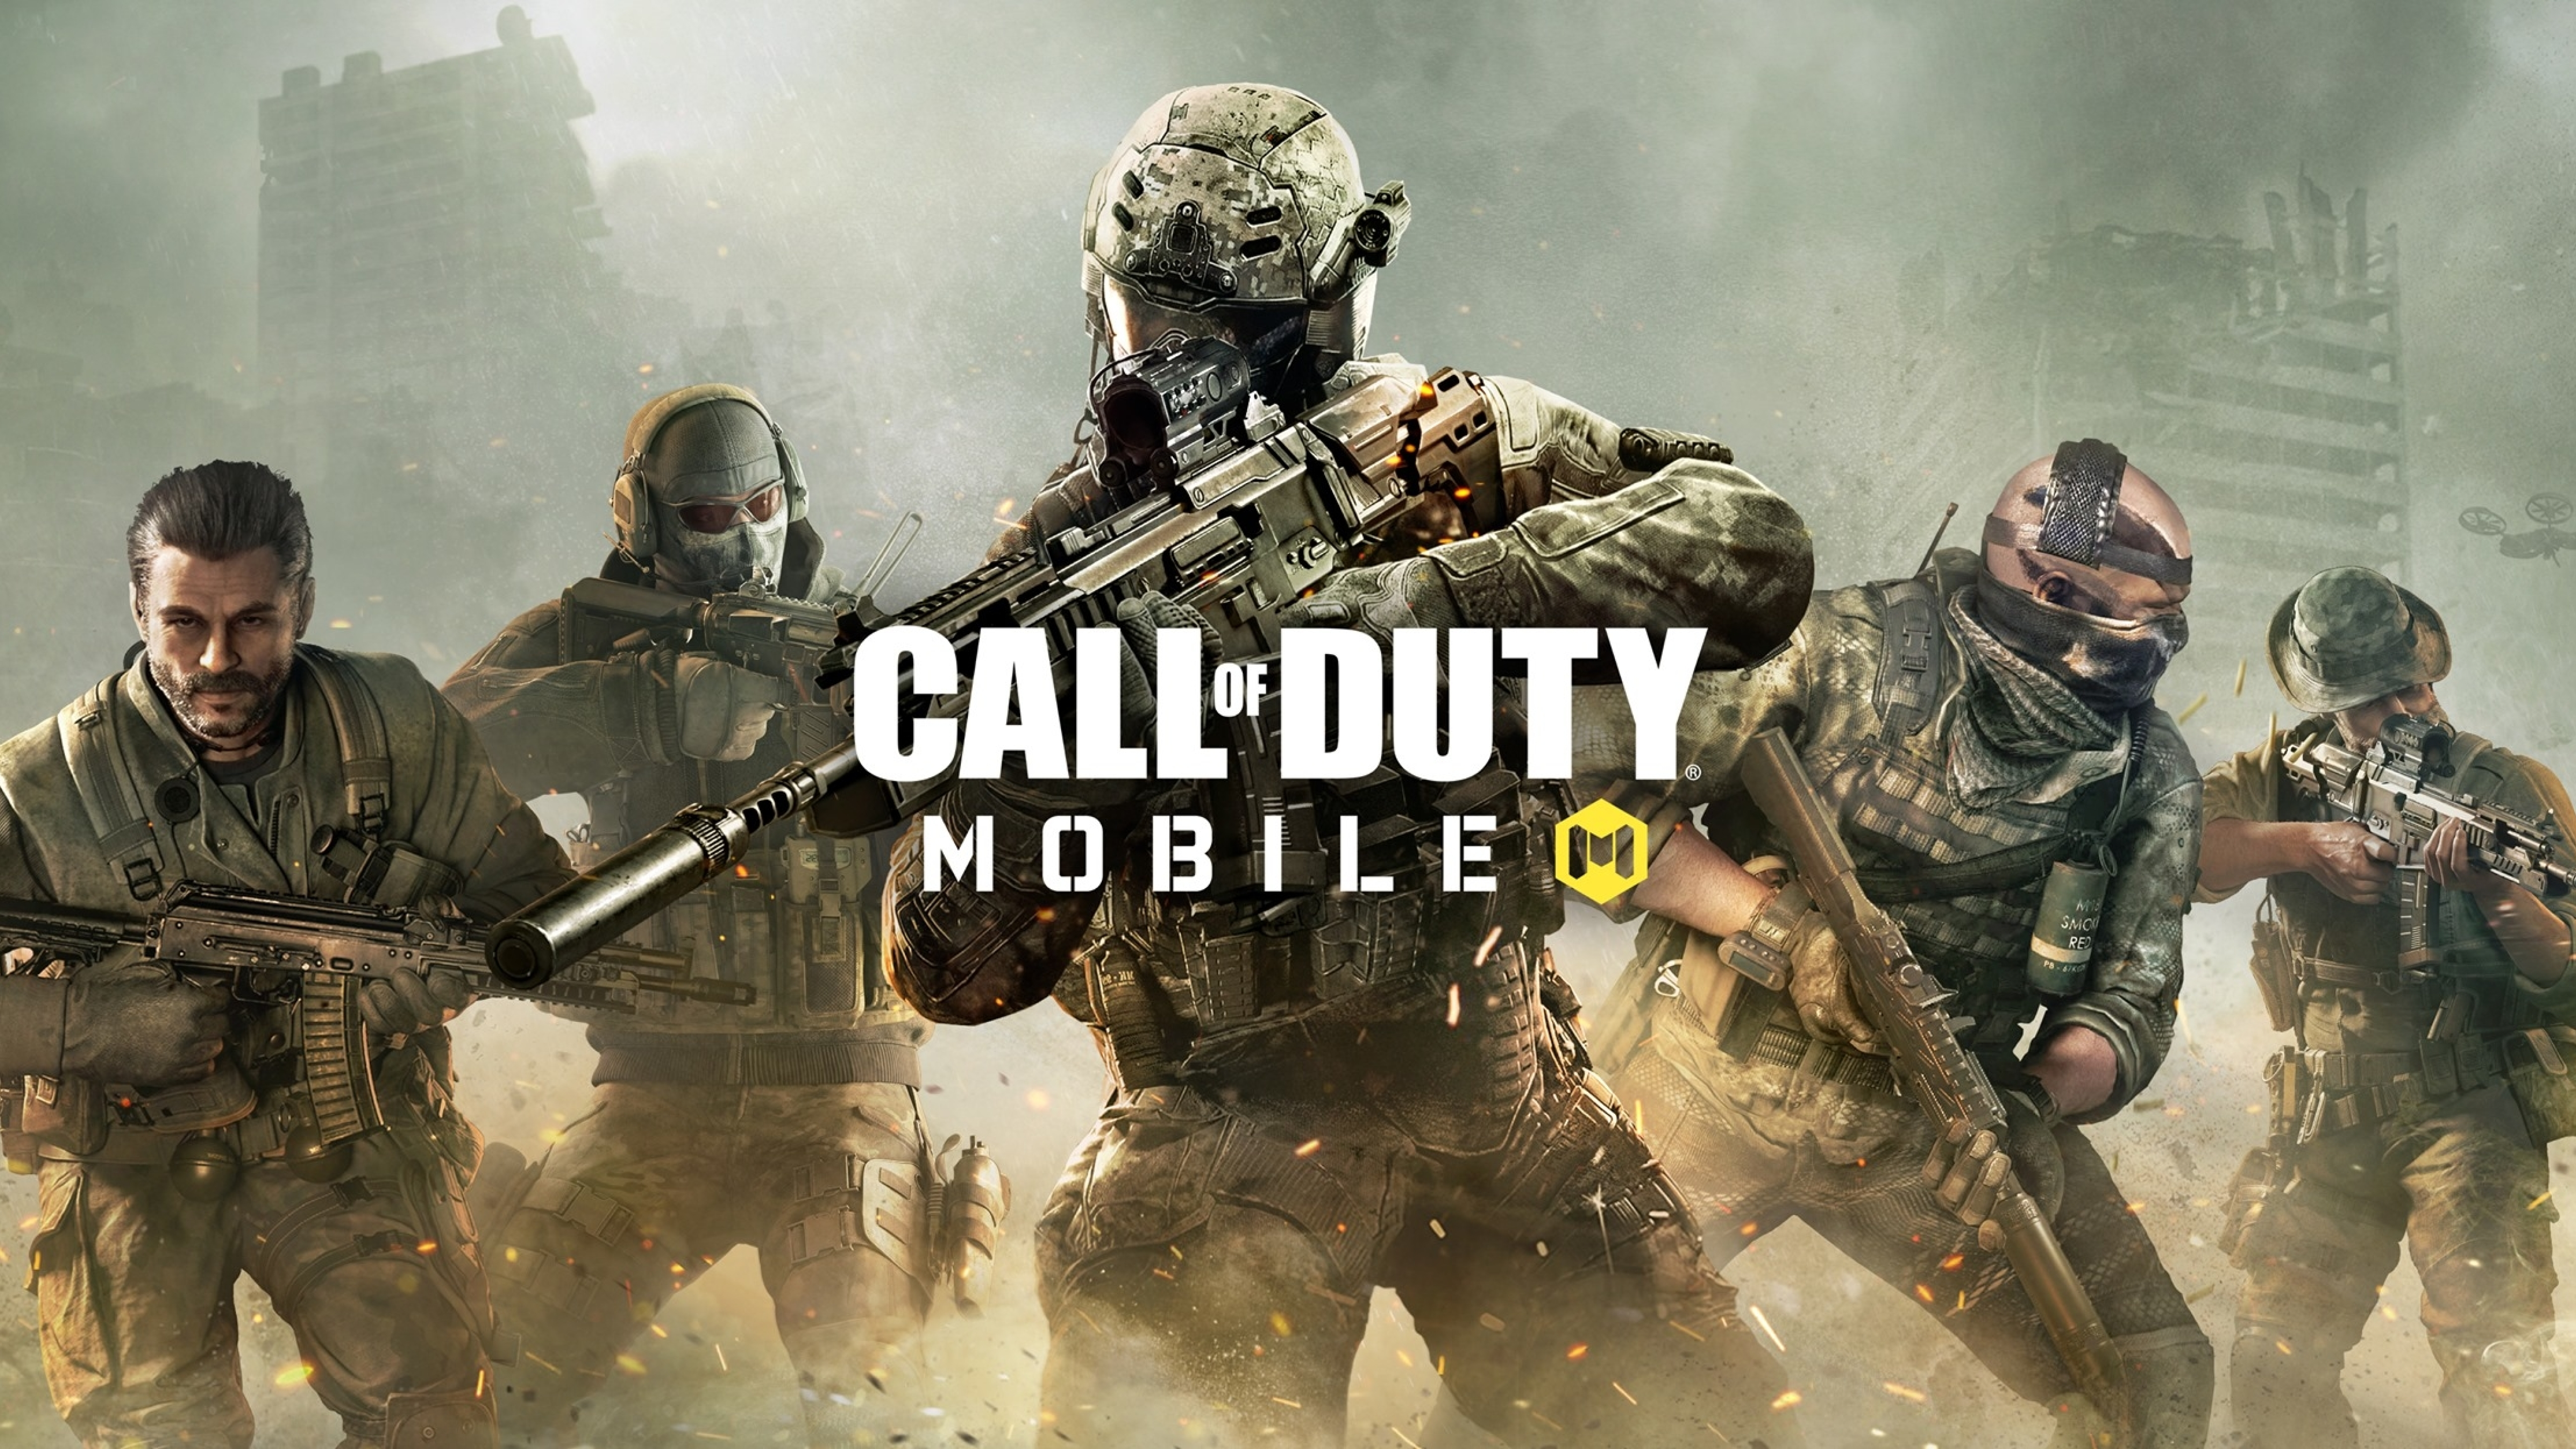 5120x2880 Call Of Duty Mobile Game 5k Wallpaper Hd Games 4k